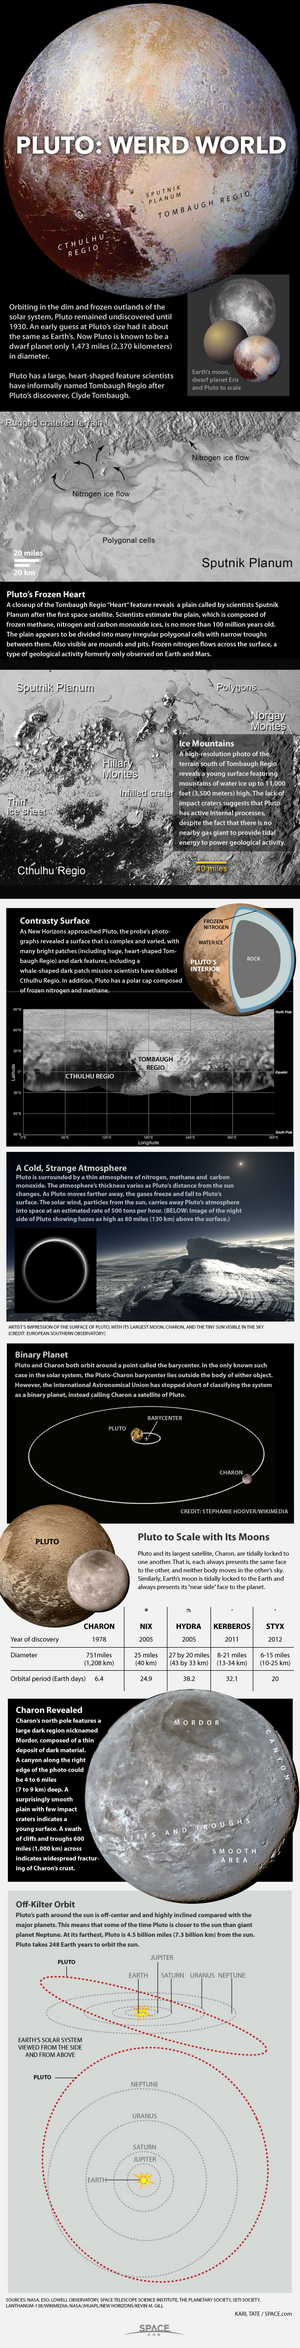 "Pluto and its moons orbit the sun near the edge of our solar system. <a href=""http://www.space.com/12370-pluto-dwarf-planet-oddity-infographic.html"">Learn all about Pluto's weirdly eccentric orbit, four moons and more in this Space.com infographic"